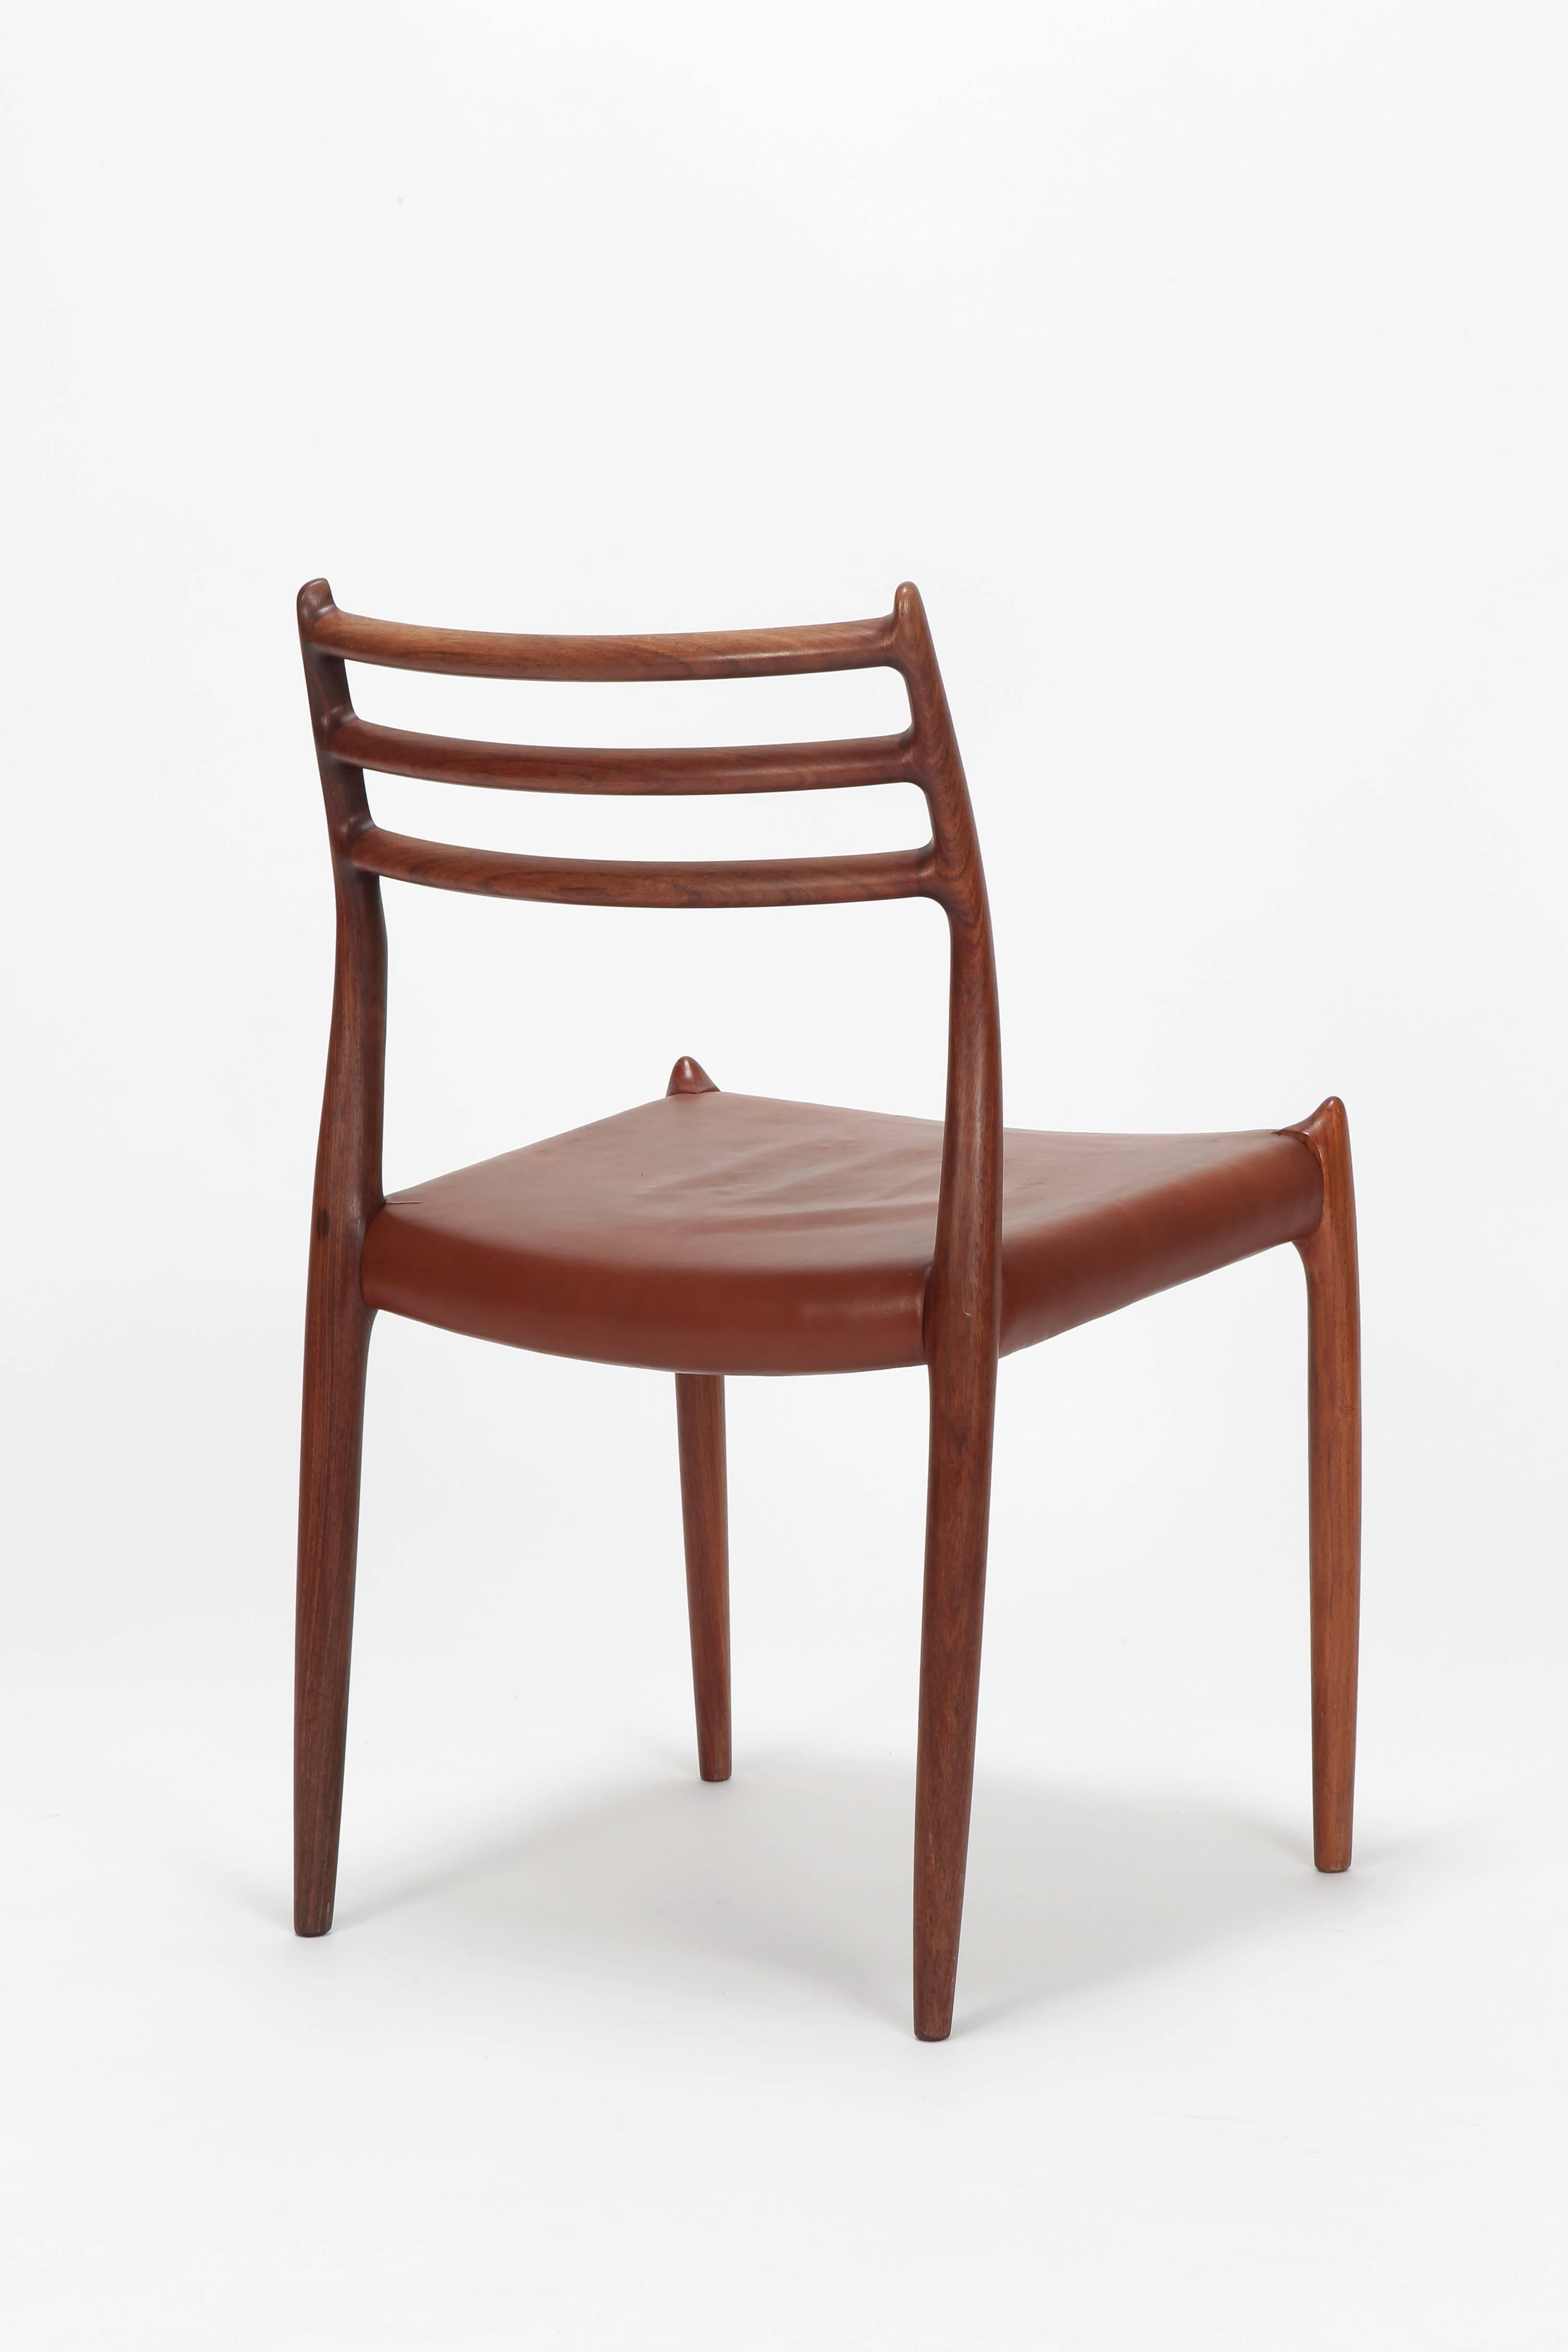 Pair Of Niels Moller Chairs Model 78 J.L. Moller, 1960s In Good Condition  For Sale